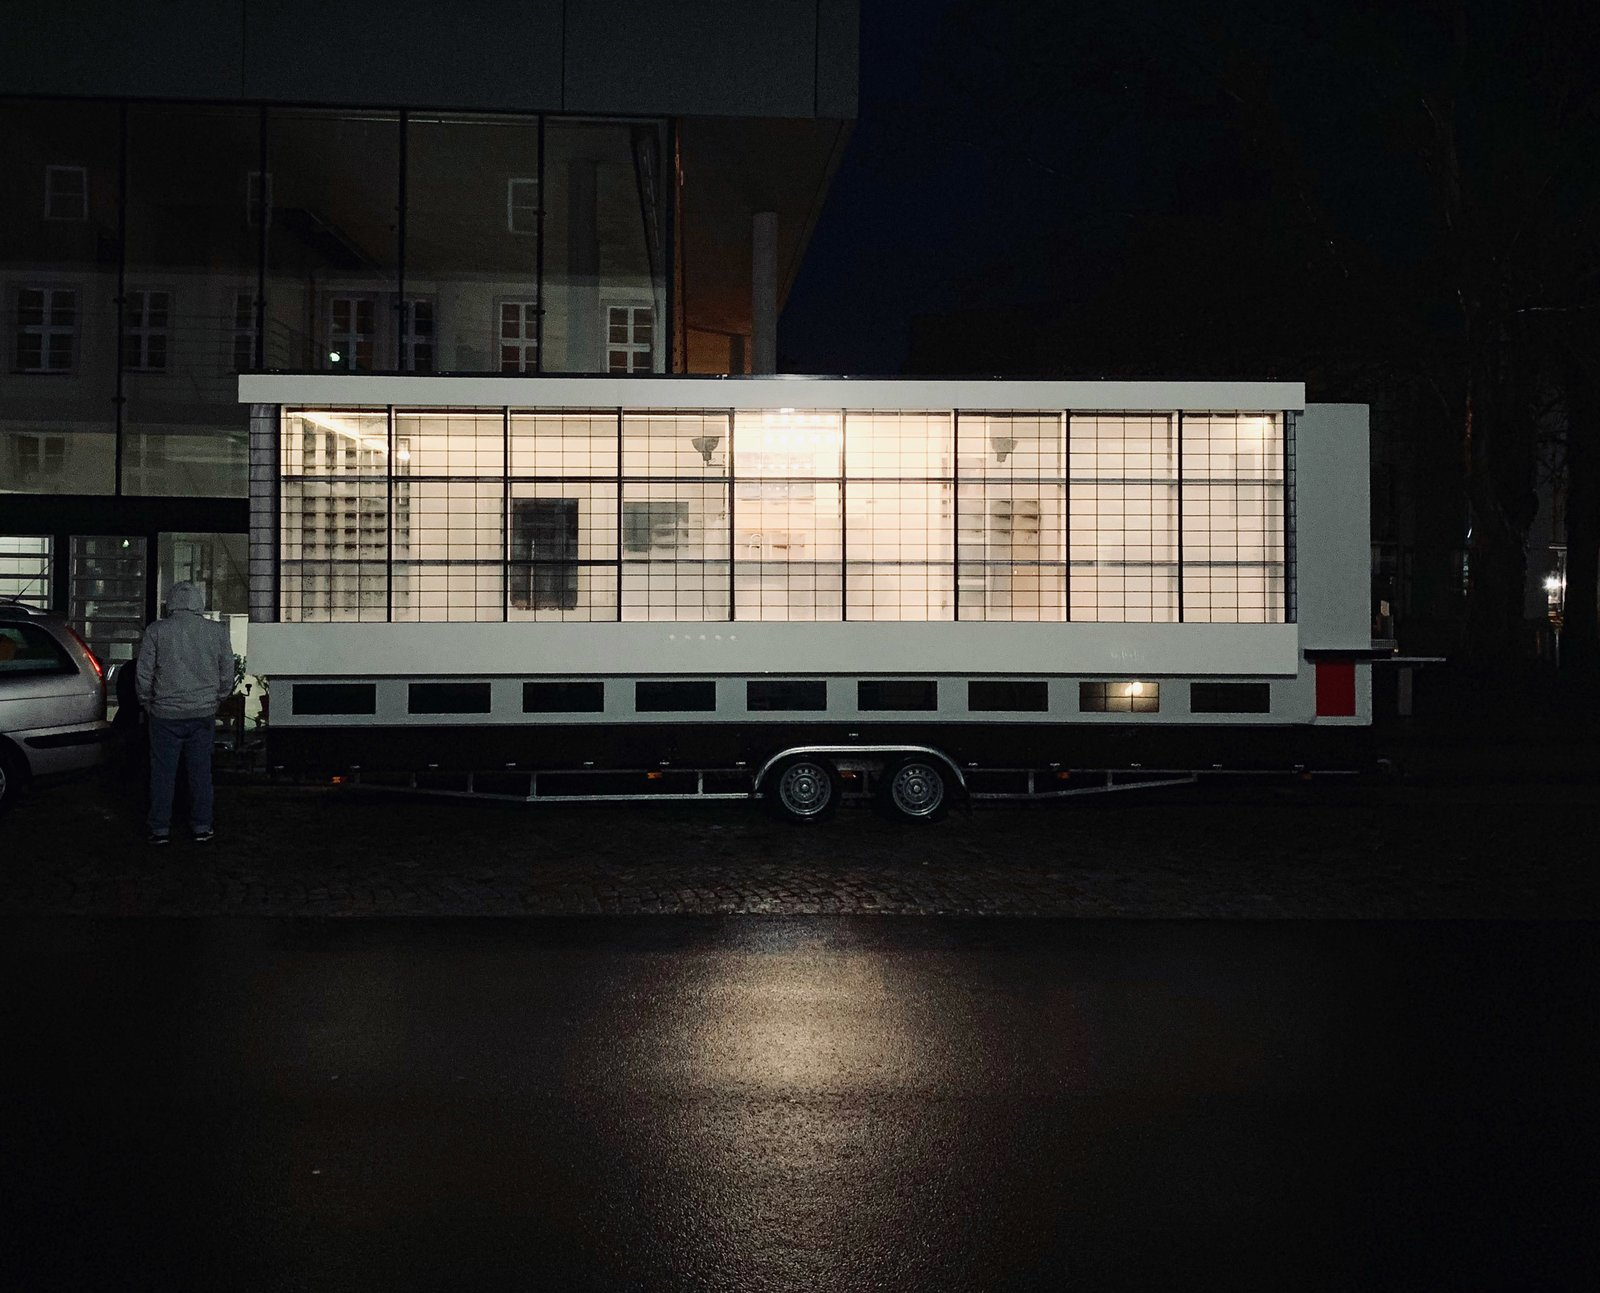 Exterior, Camper, Metal, Stucco, Flat, Glass, and Metal Gropius' Bauhaus building in Dessau is a mecca for design lovers.   Exterior Stucco Camper Photos from The Bauhaus Bus Embarks on a World Tour to Celebrate the School's Centennial